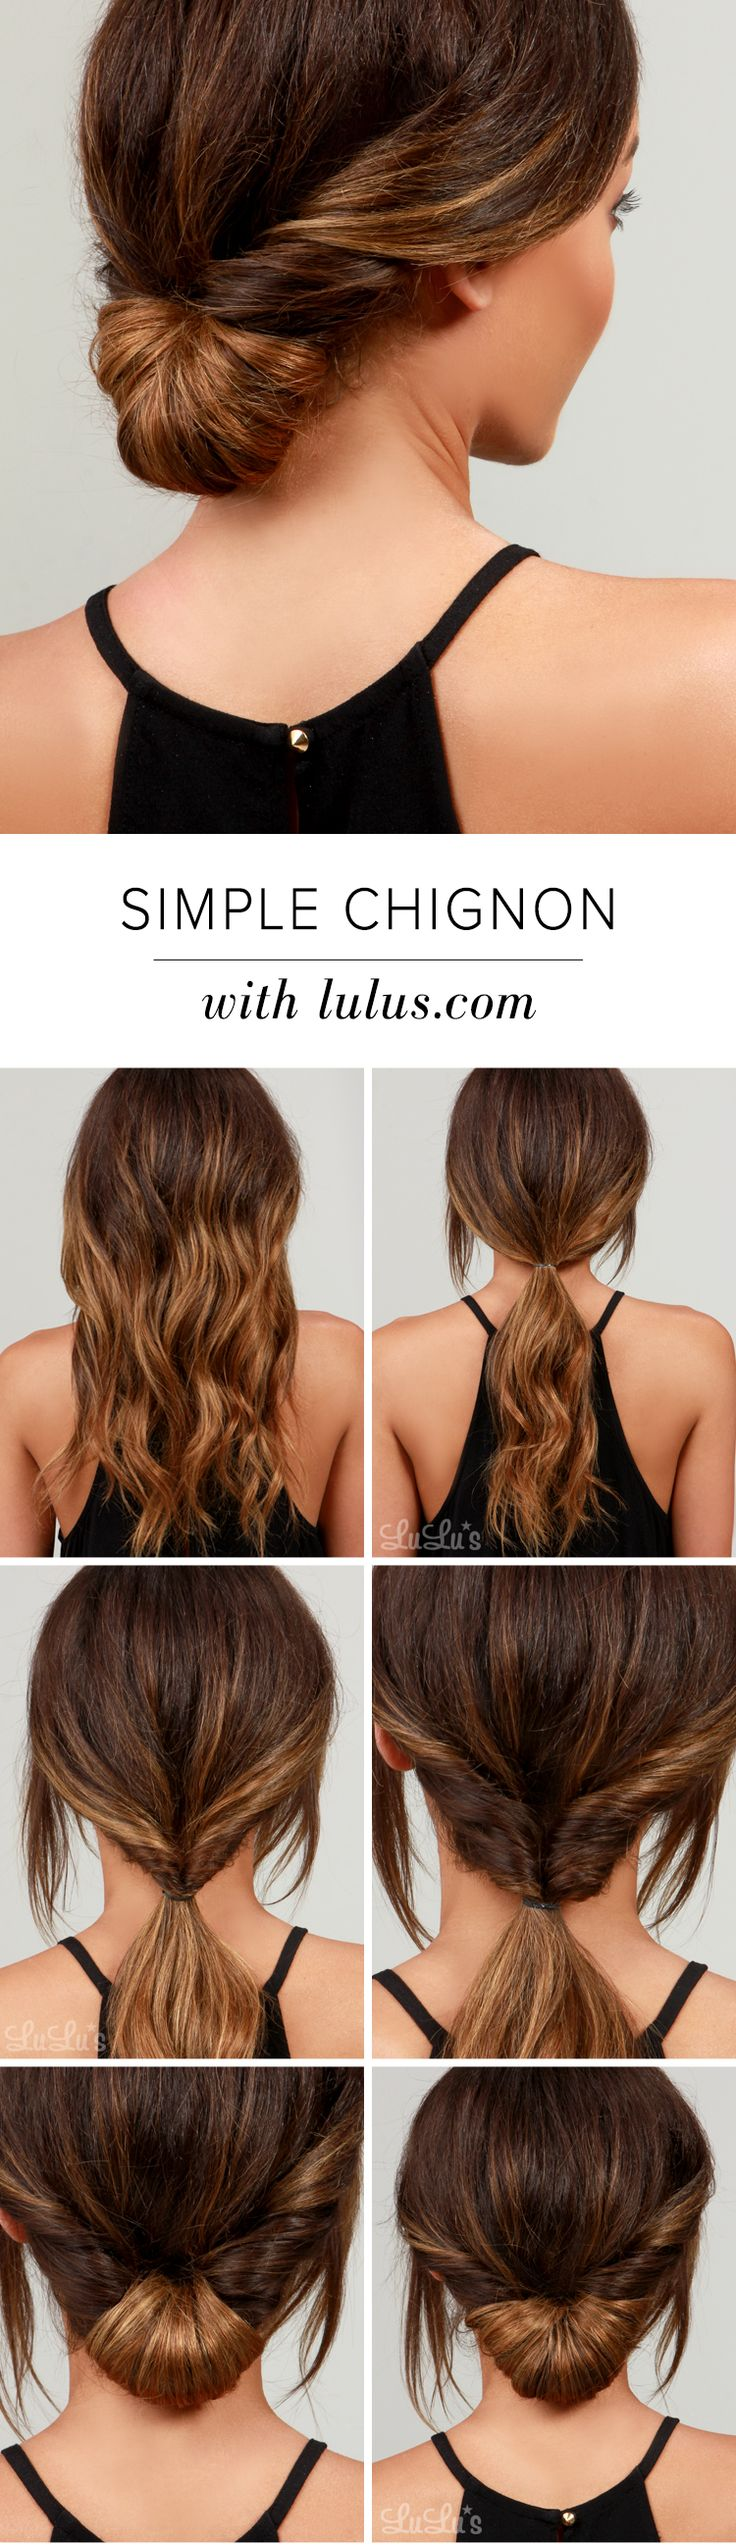 What to do with day-old hair